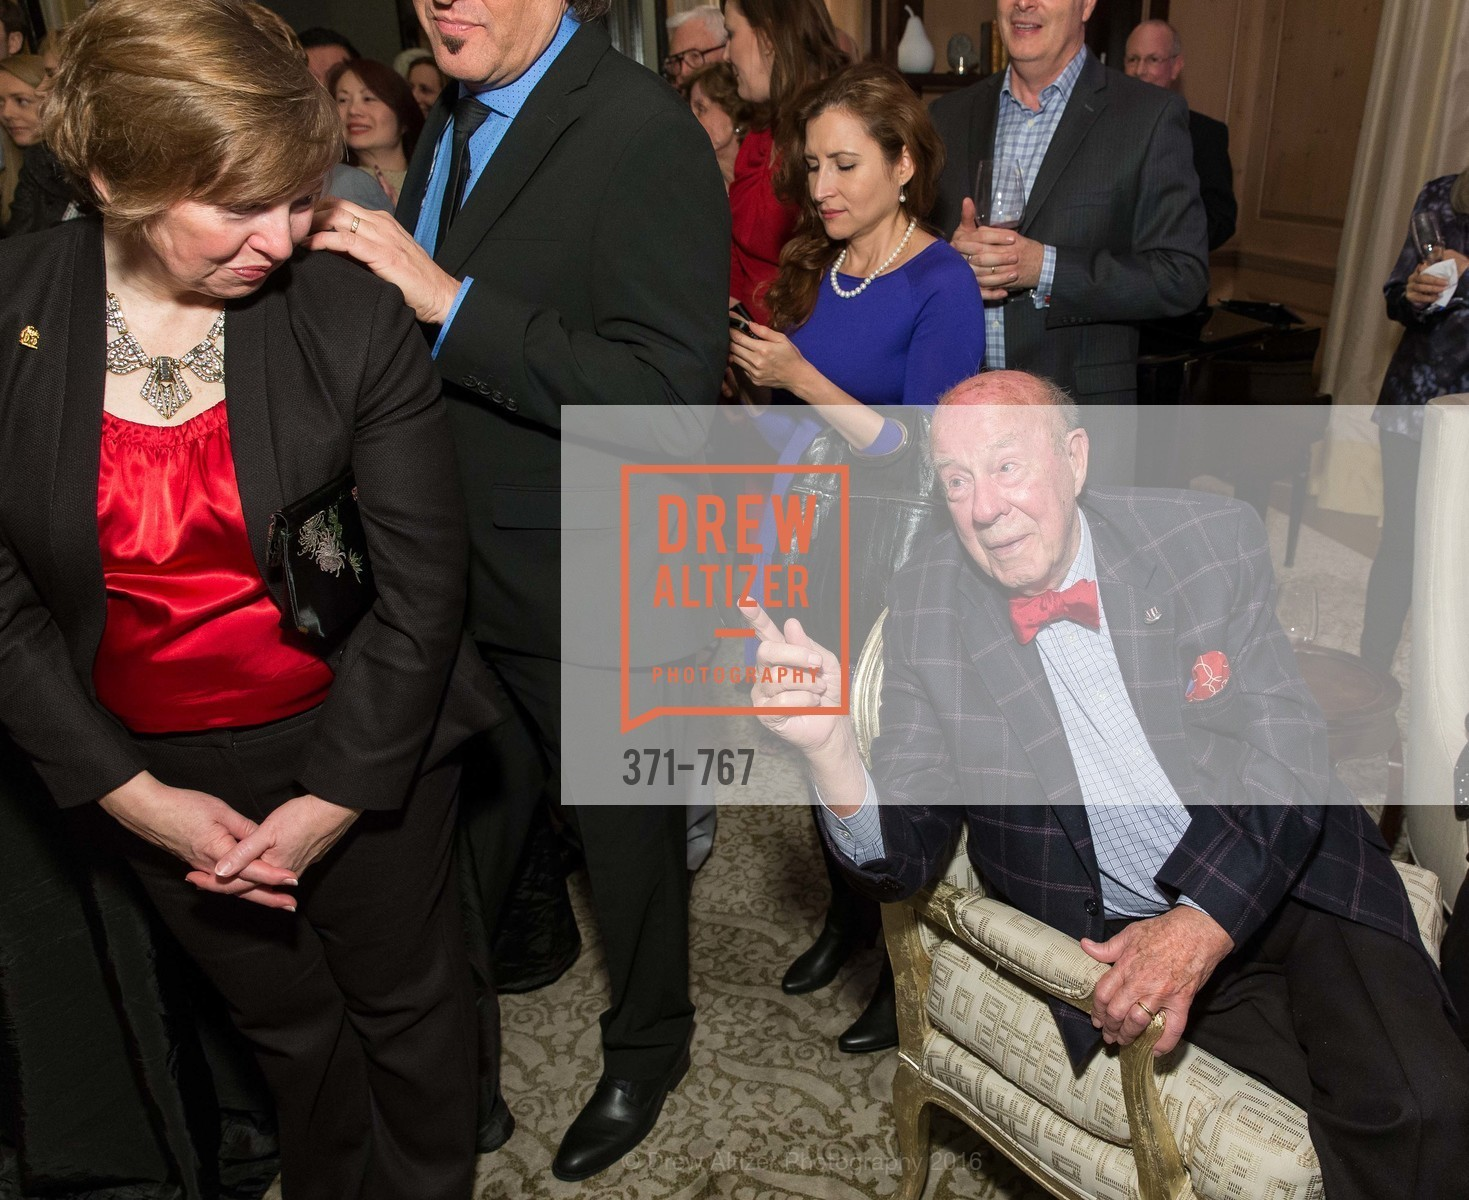 George Shultz, A Special Reception with Tony Bennett, The Fairmont, San Francisco, The Penthouse Suite, January 26th, 2016,Drew Altizer, Drew Altizer Photography, full-service agency, private events, San Francisco photographer, photographer california